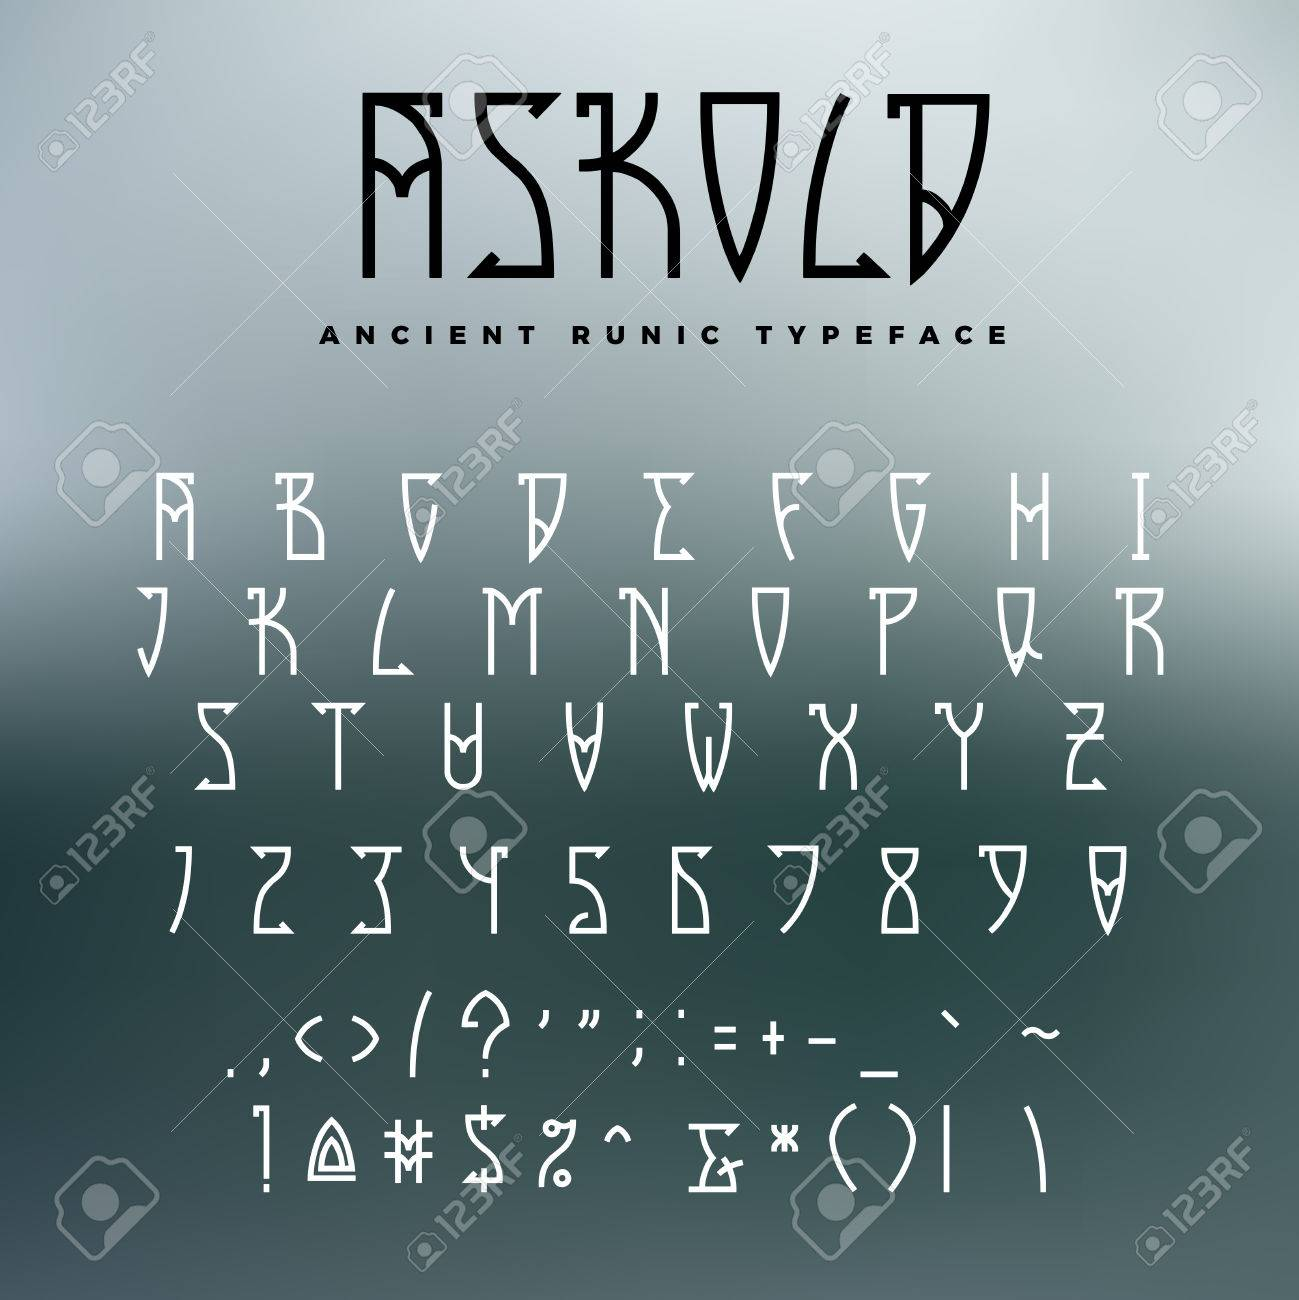 Celtic Or Runic Typeface With Uppercase Letters Numbers And Additional Symbols Slub Serif Font